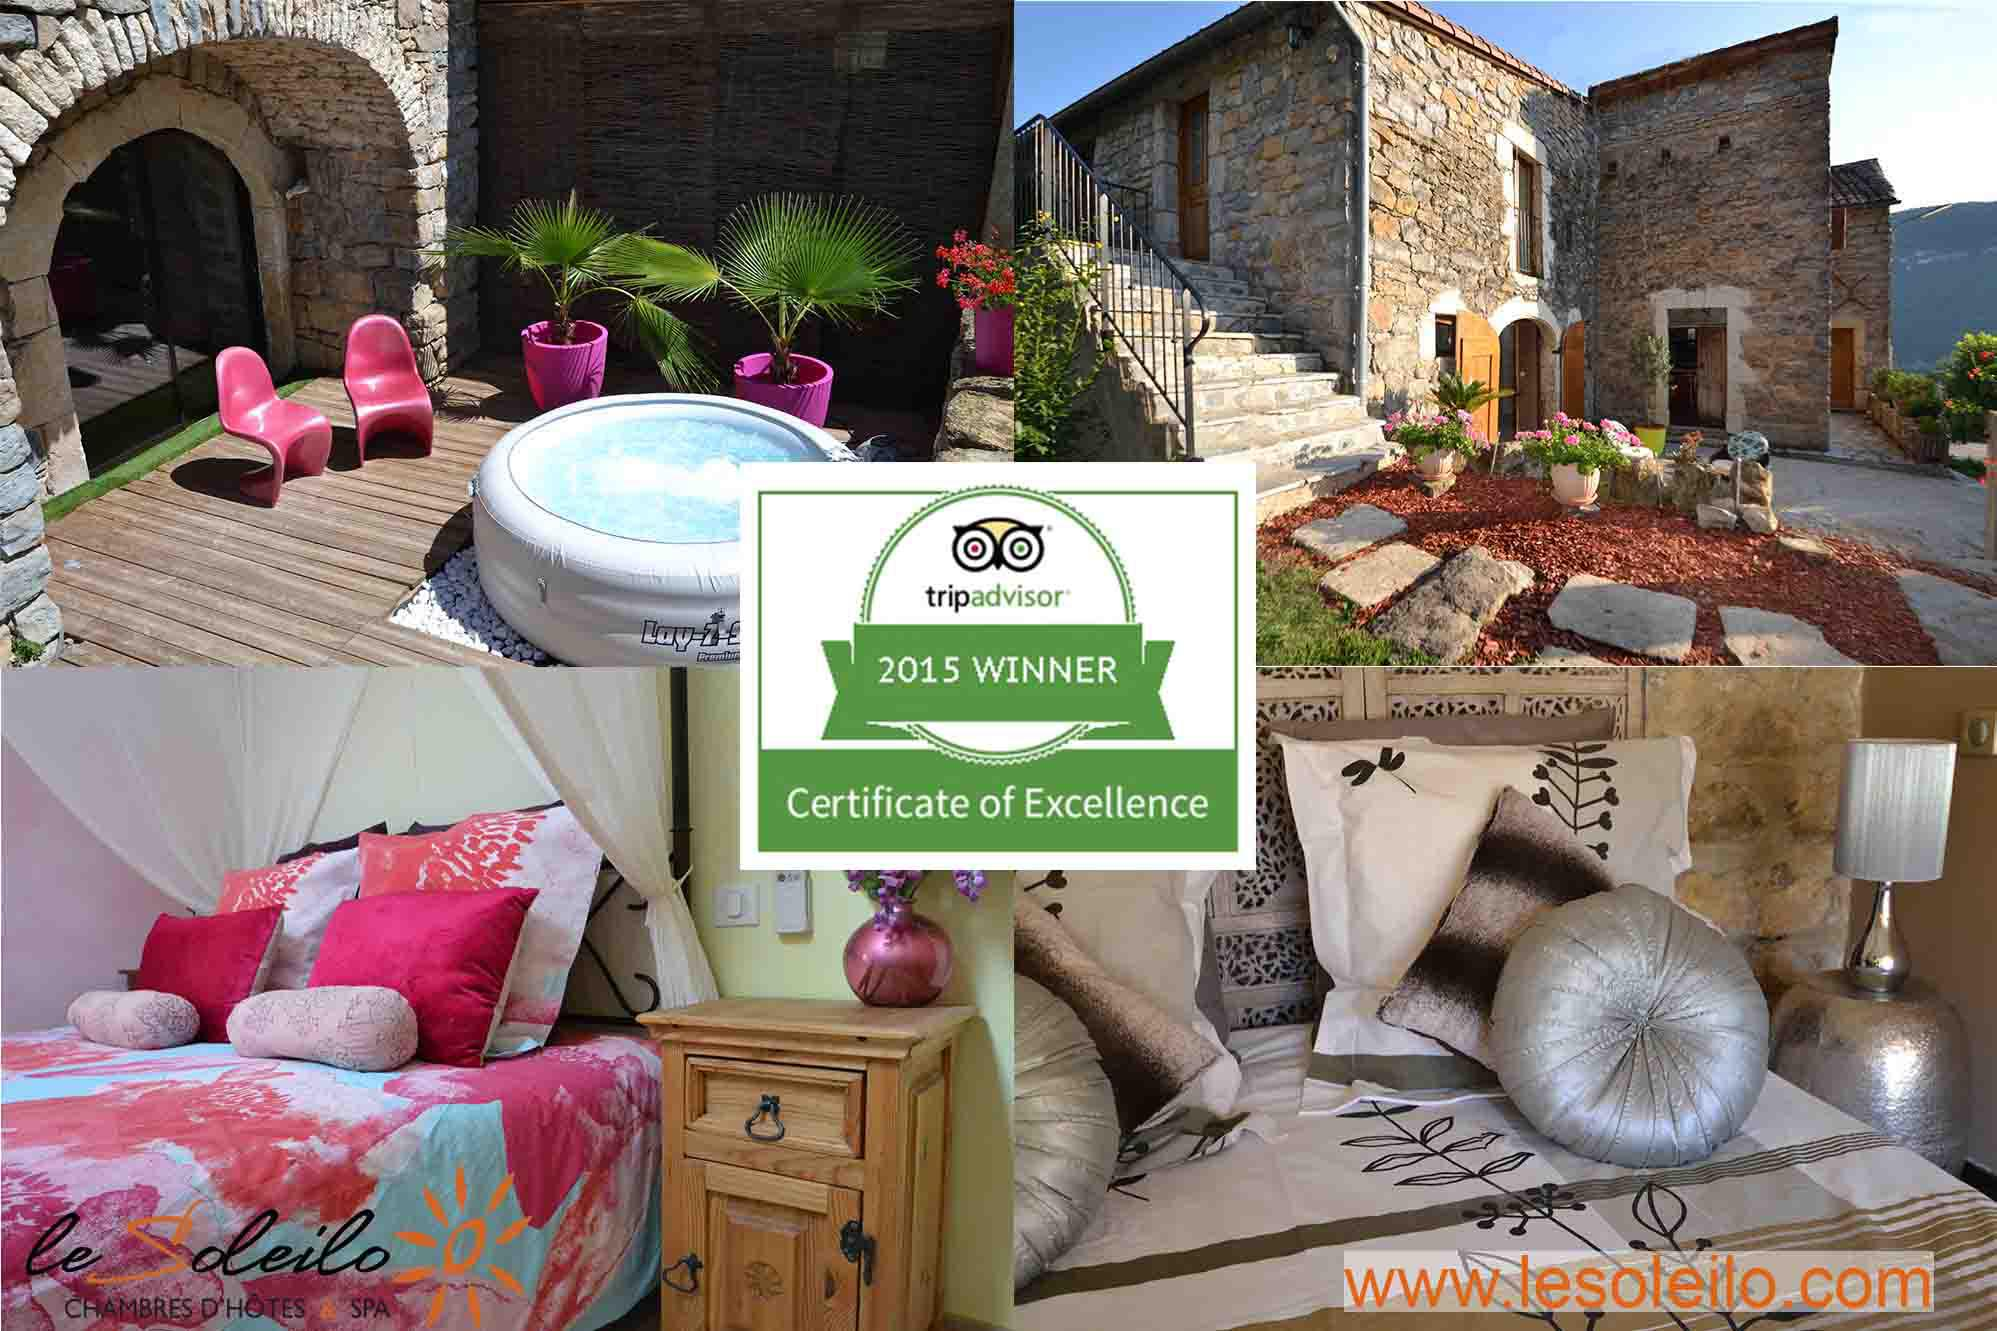 Acknowledgement of The Soleilo elected quality holiday accommodation in the Gorges du Tarn with Tripadvisor Certificate of Excellence